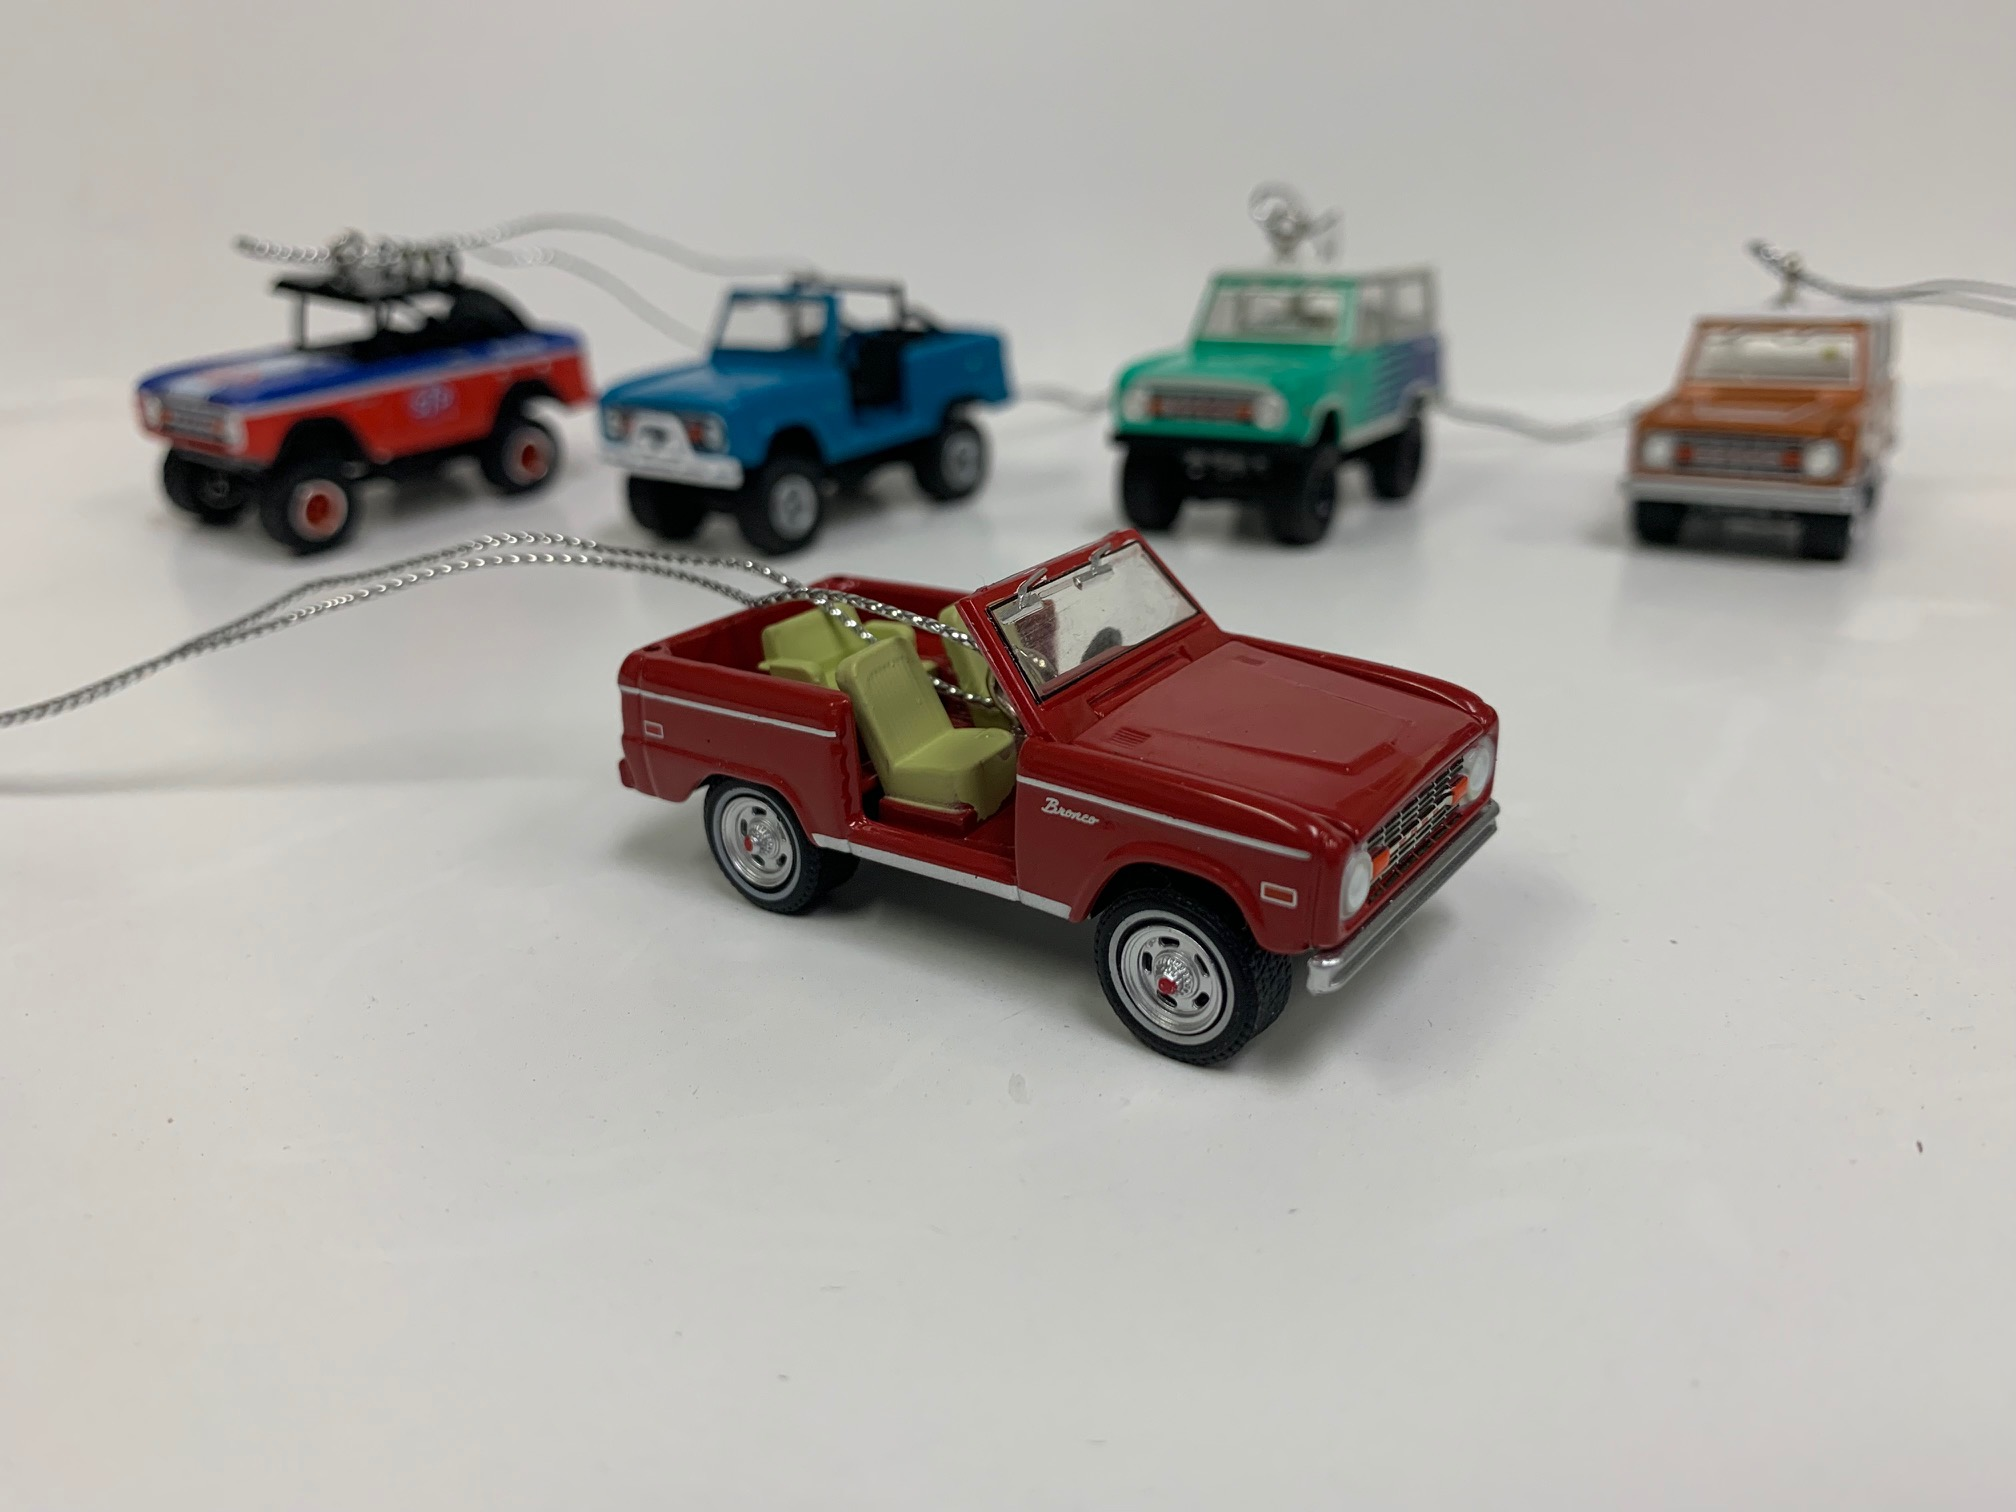 Christmas Ornament - 1974 Ford Bronco, Red ''Elvis Presley'', 1:64 Die Cast